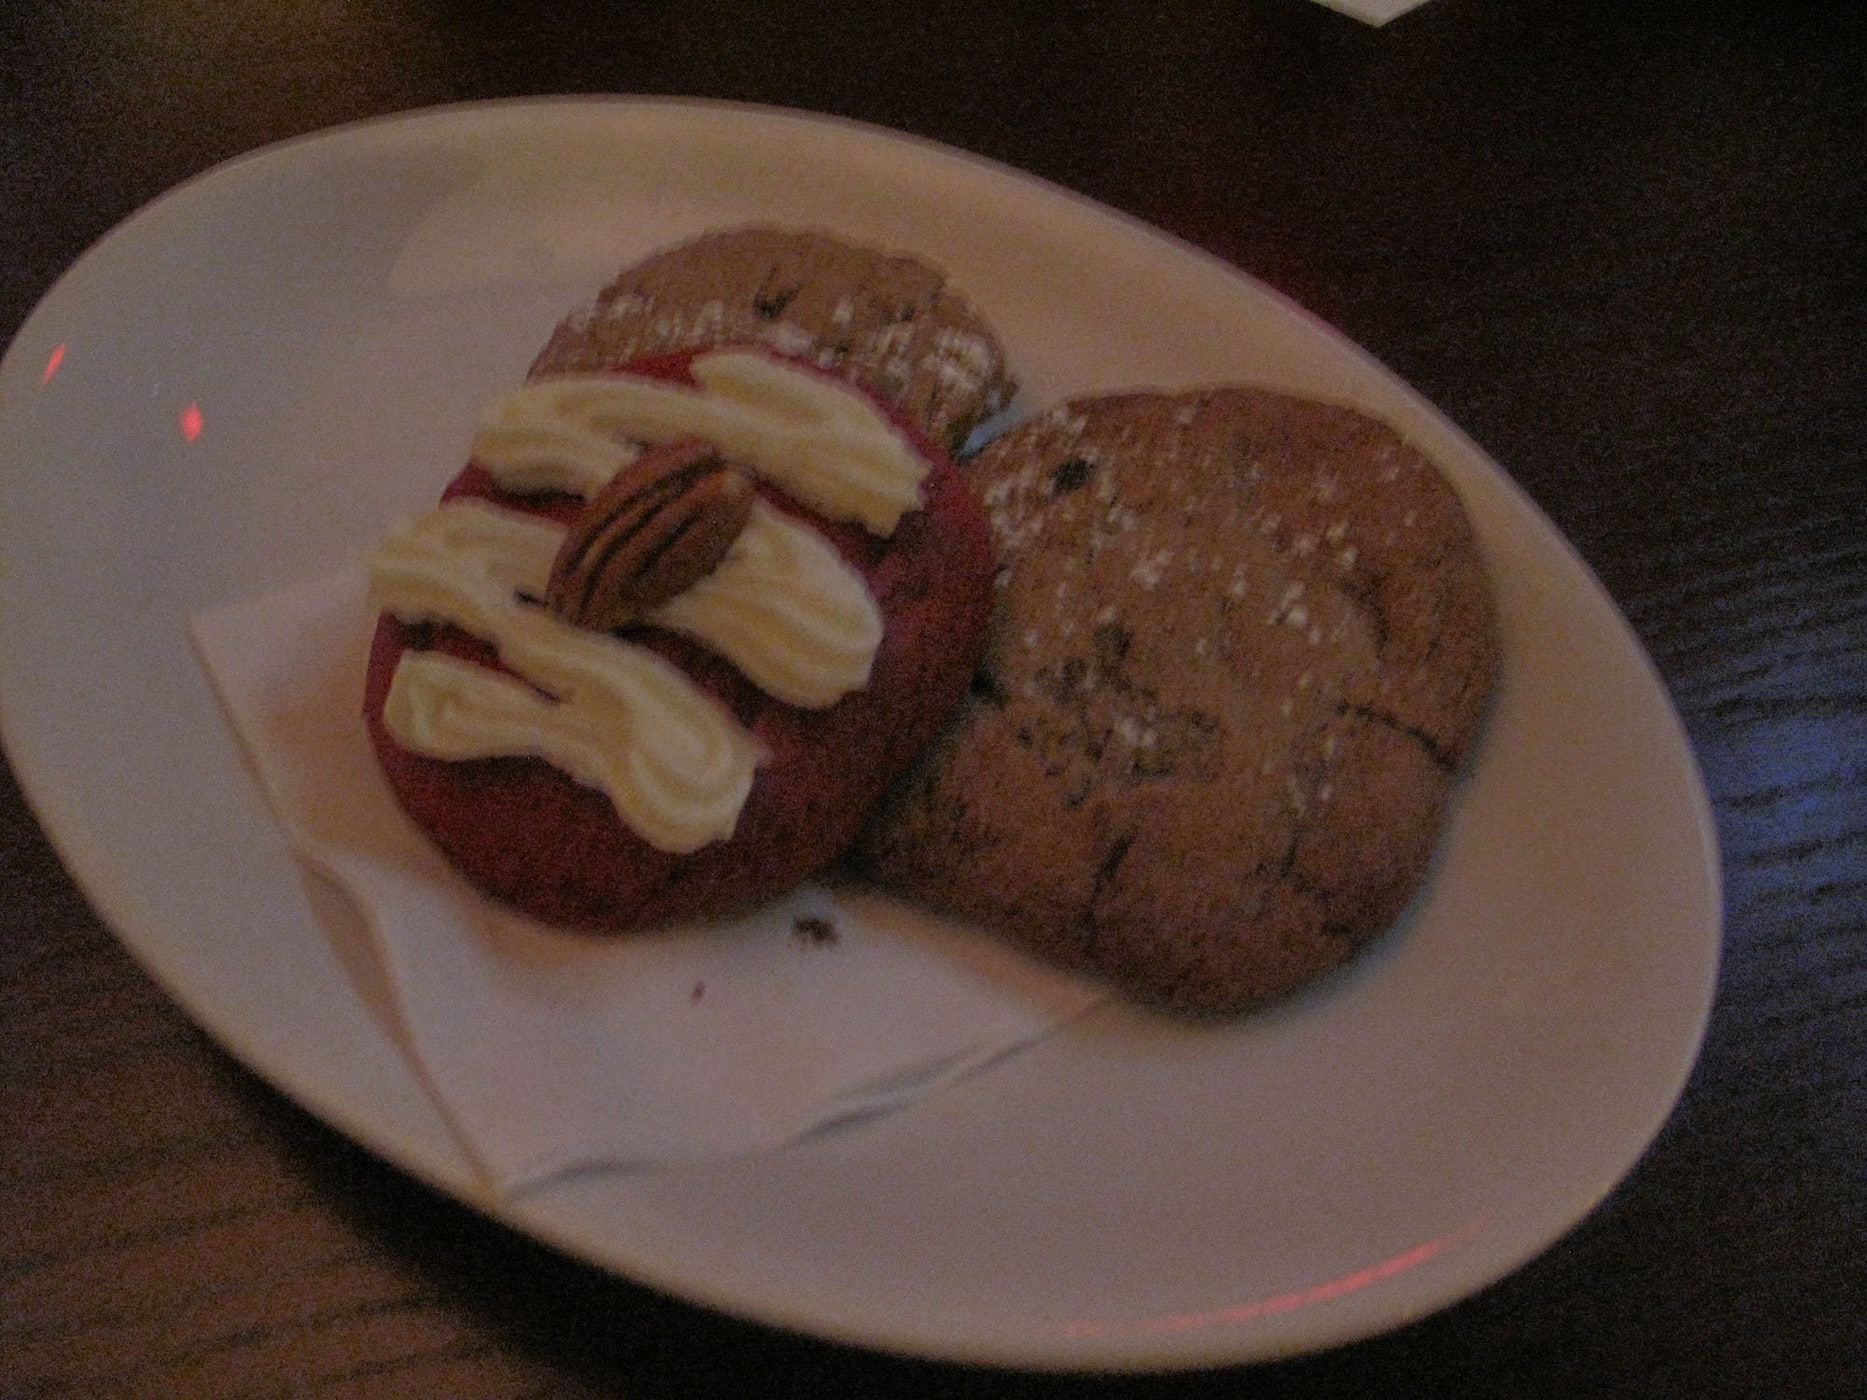 Dessert of cookies at the GrubWithUs Chicago Q meal.